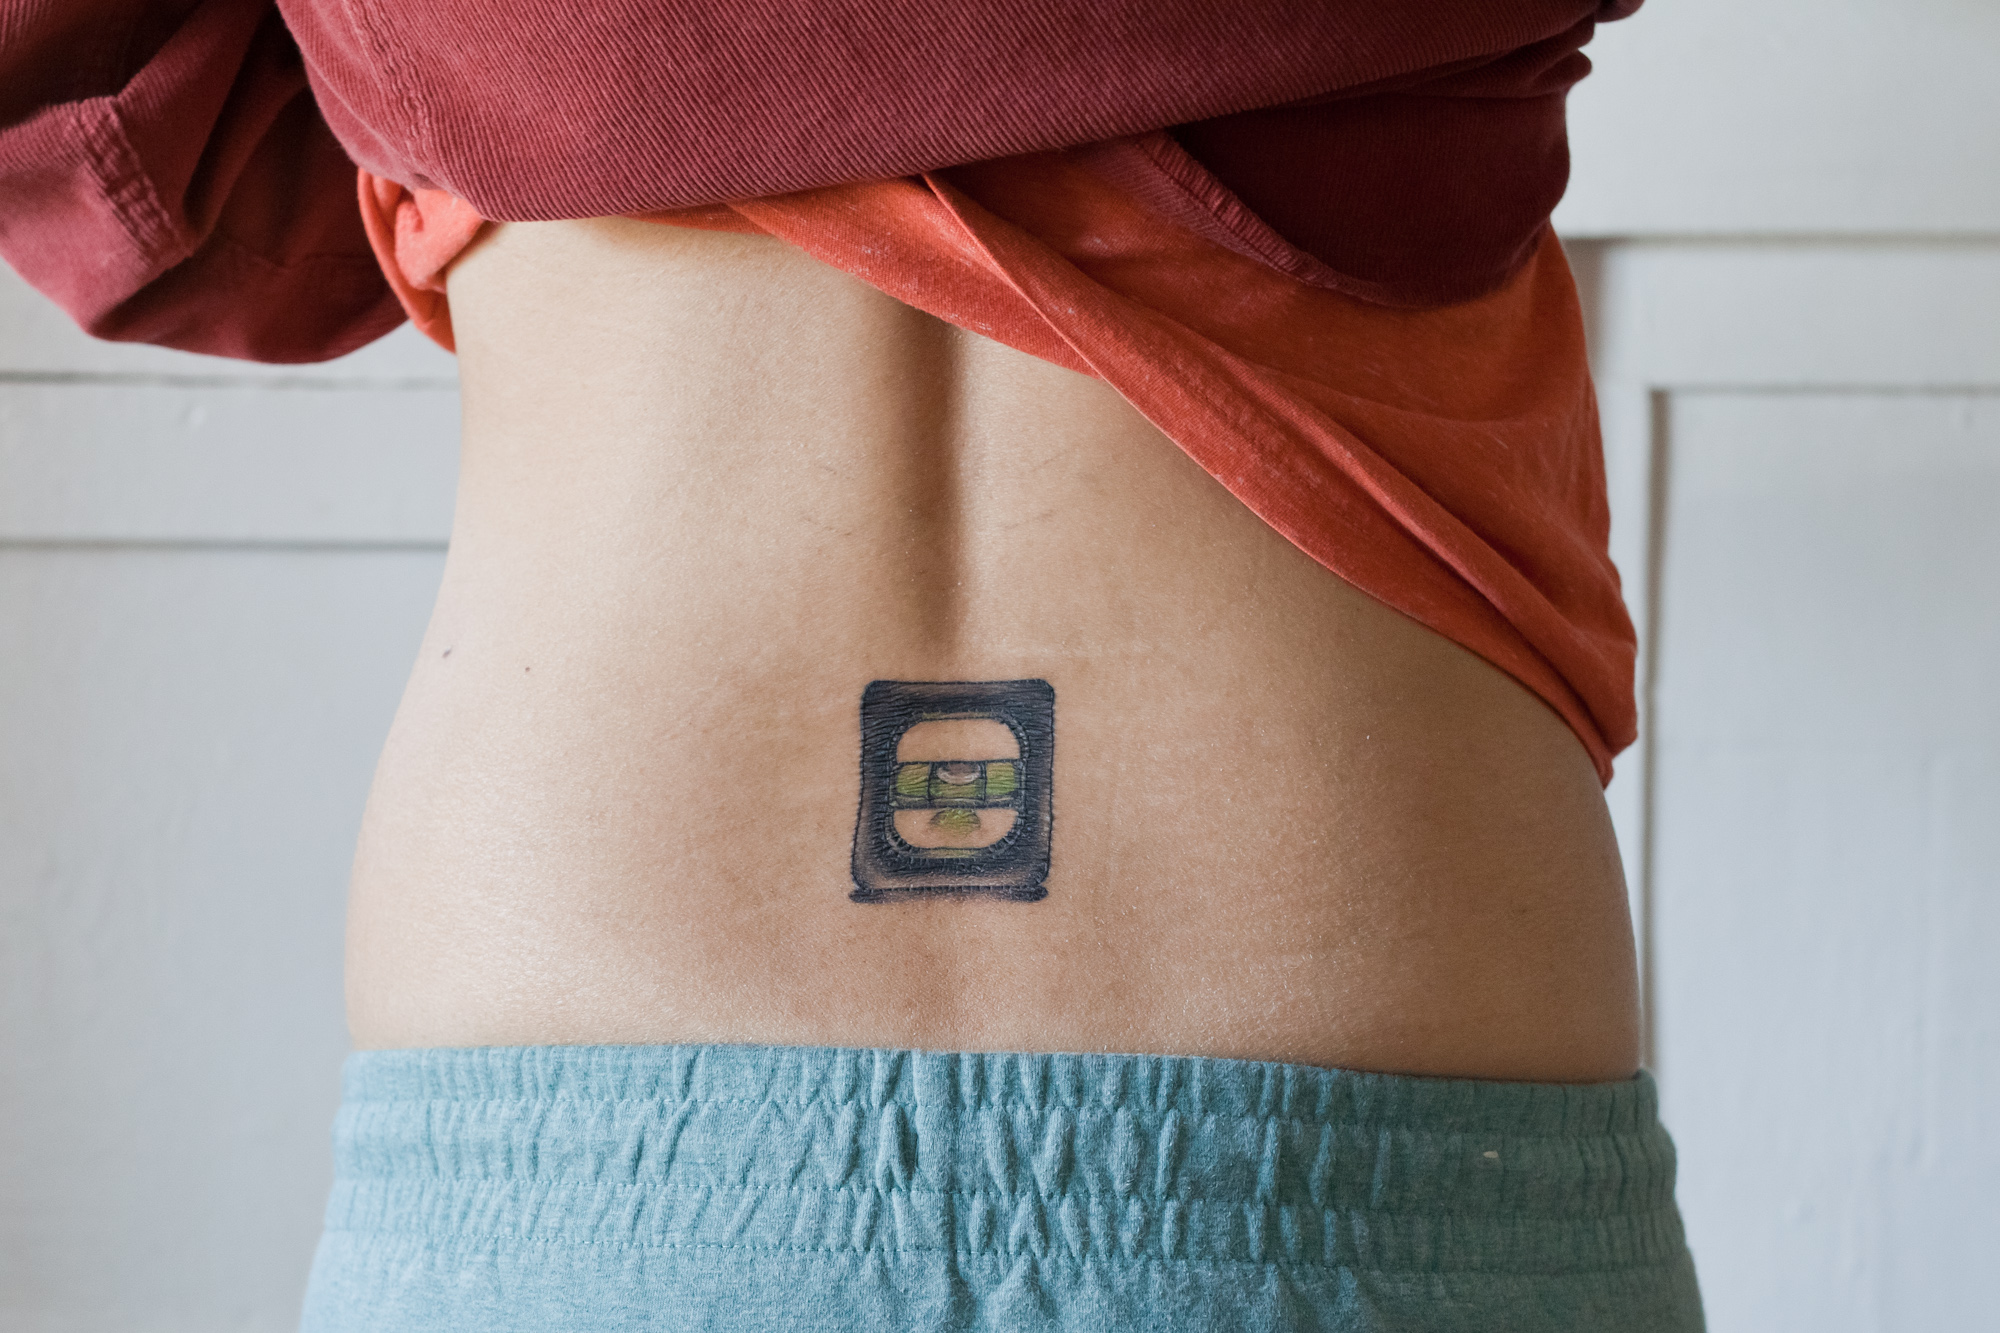 Image of my first bad tattoo, a bubble level tramp stamp